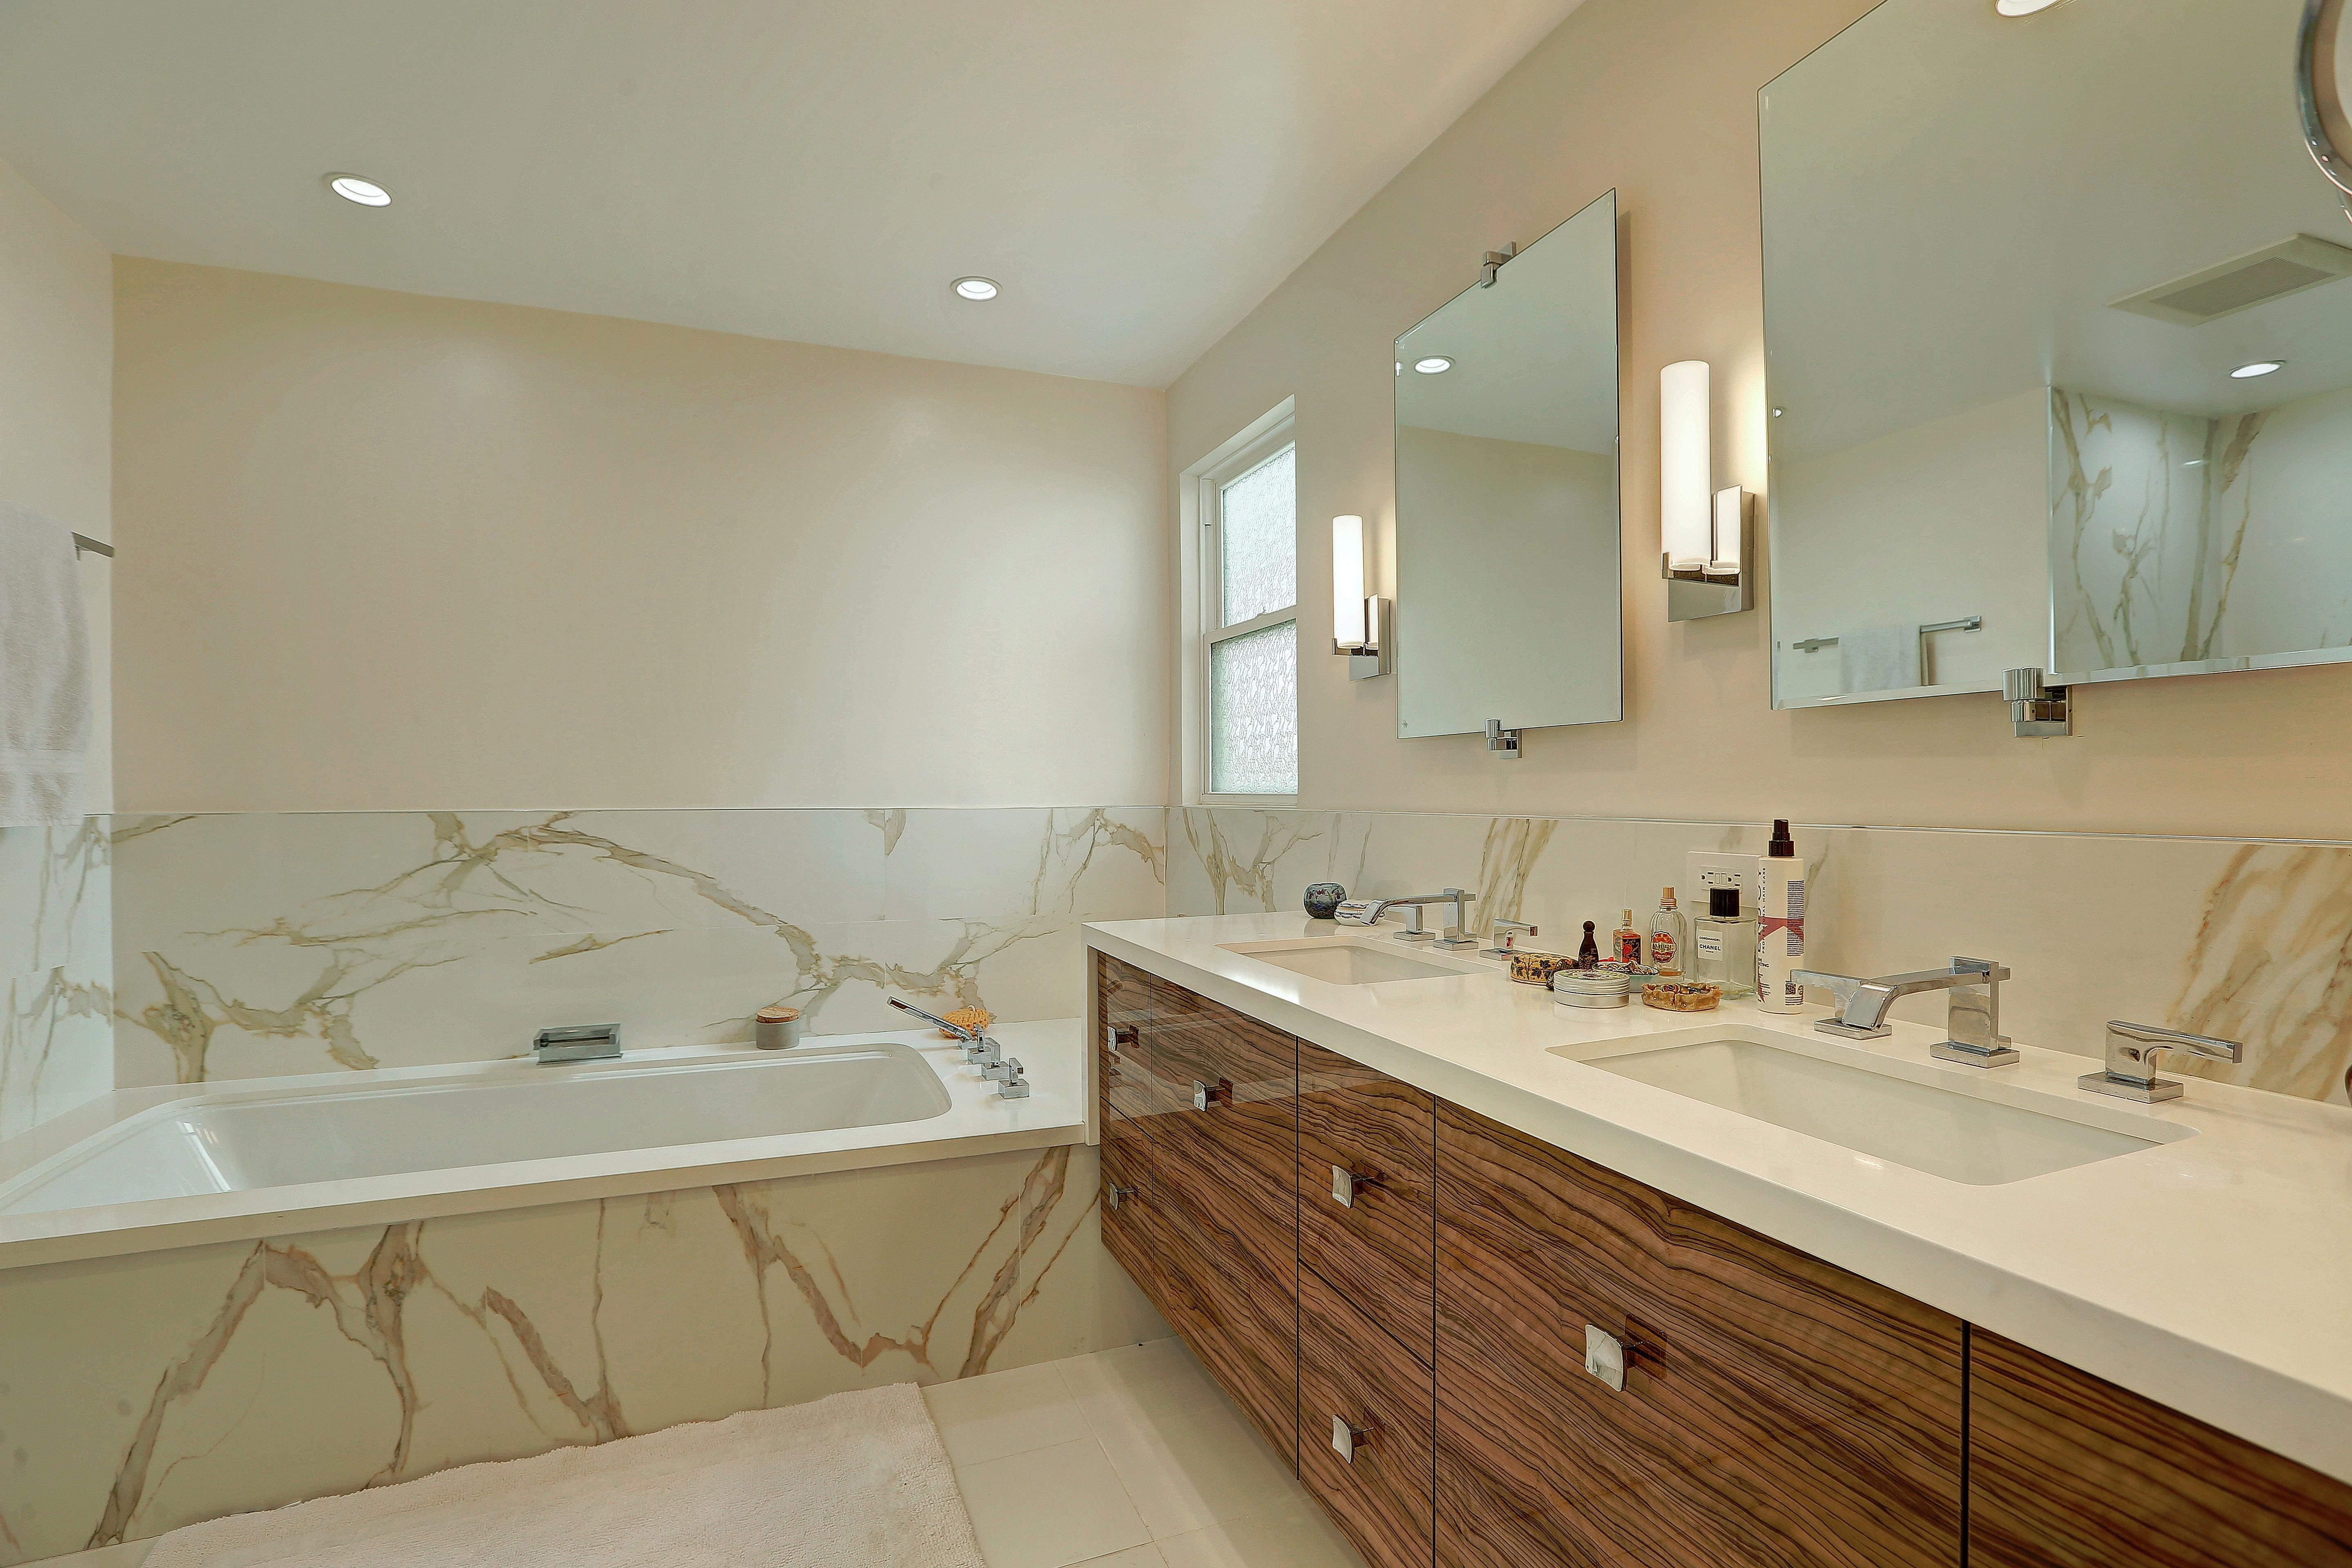 How To Distress Bathroom Cabinets Specially For Los Angeles Deebonk